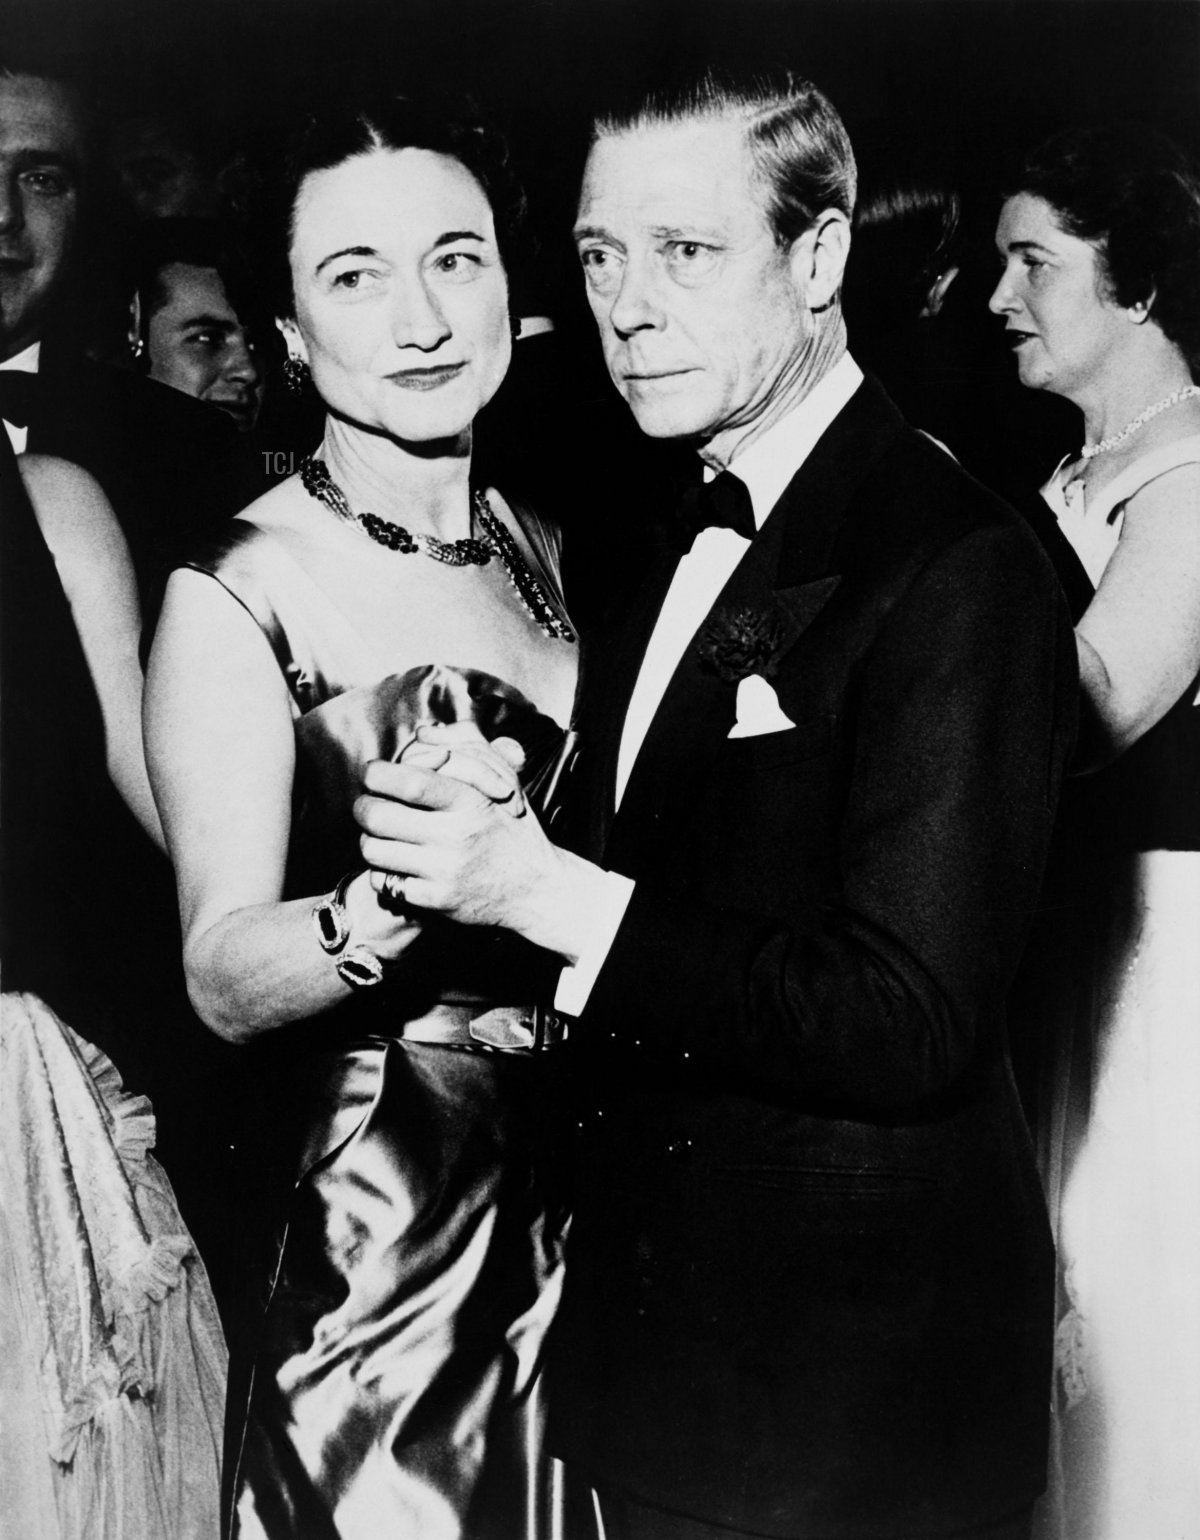 The Duke and Duchess of Windsor at the assembly ball in the Hotel Sherry-Netherland, 1950